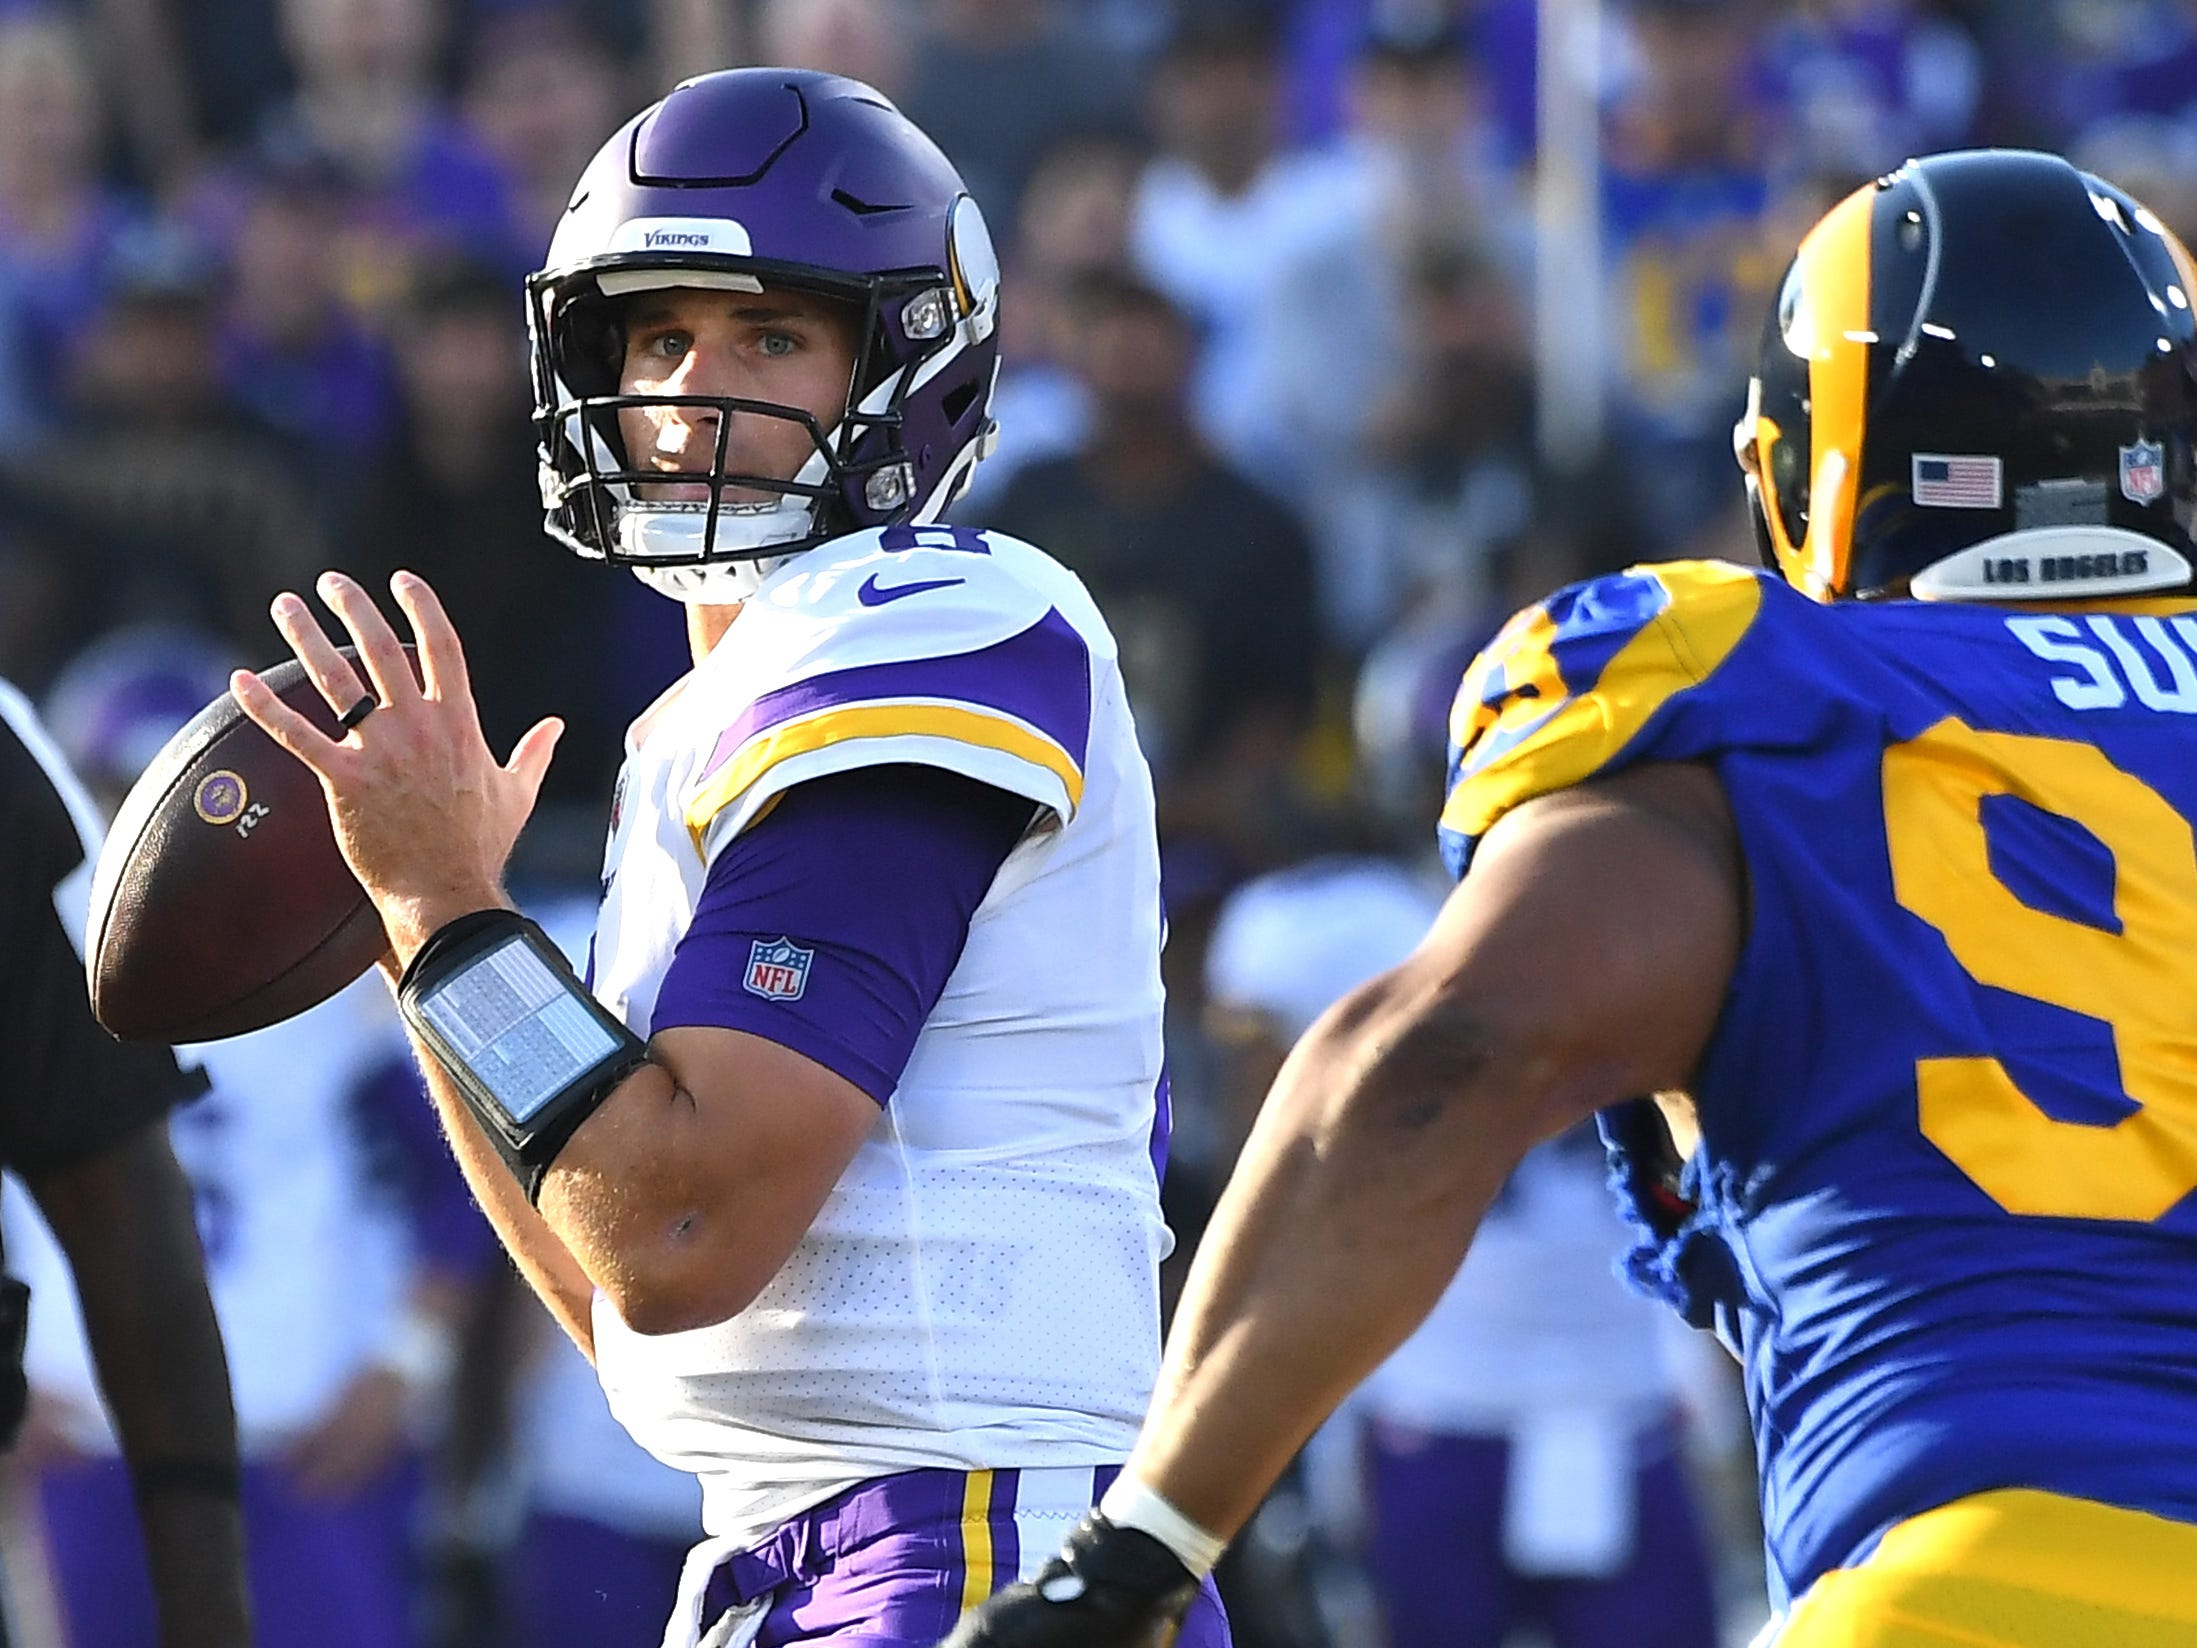 Minnesota Vikings quarterback Kirk Cousins throws a touchdown pass in the first quarter against the Los Angeles Rams at the Los Angeles Memorial Coliseum.